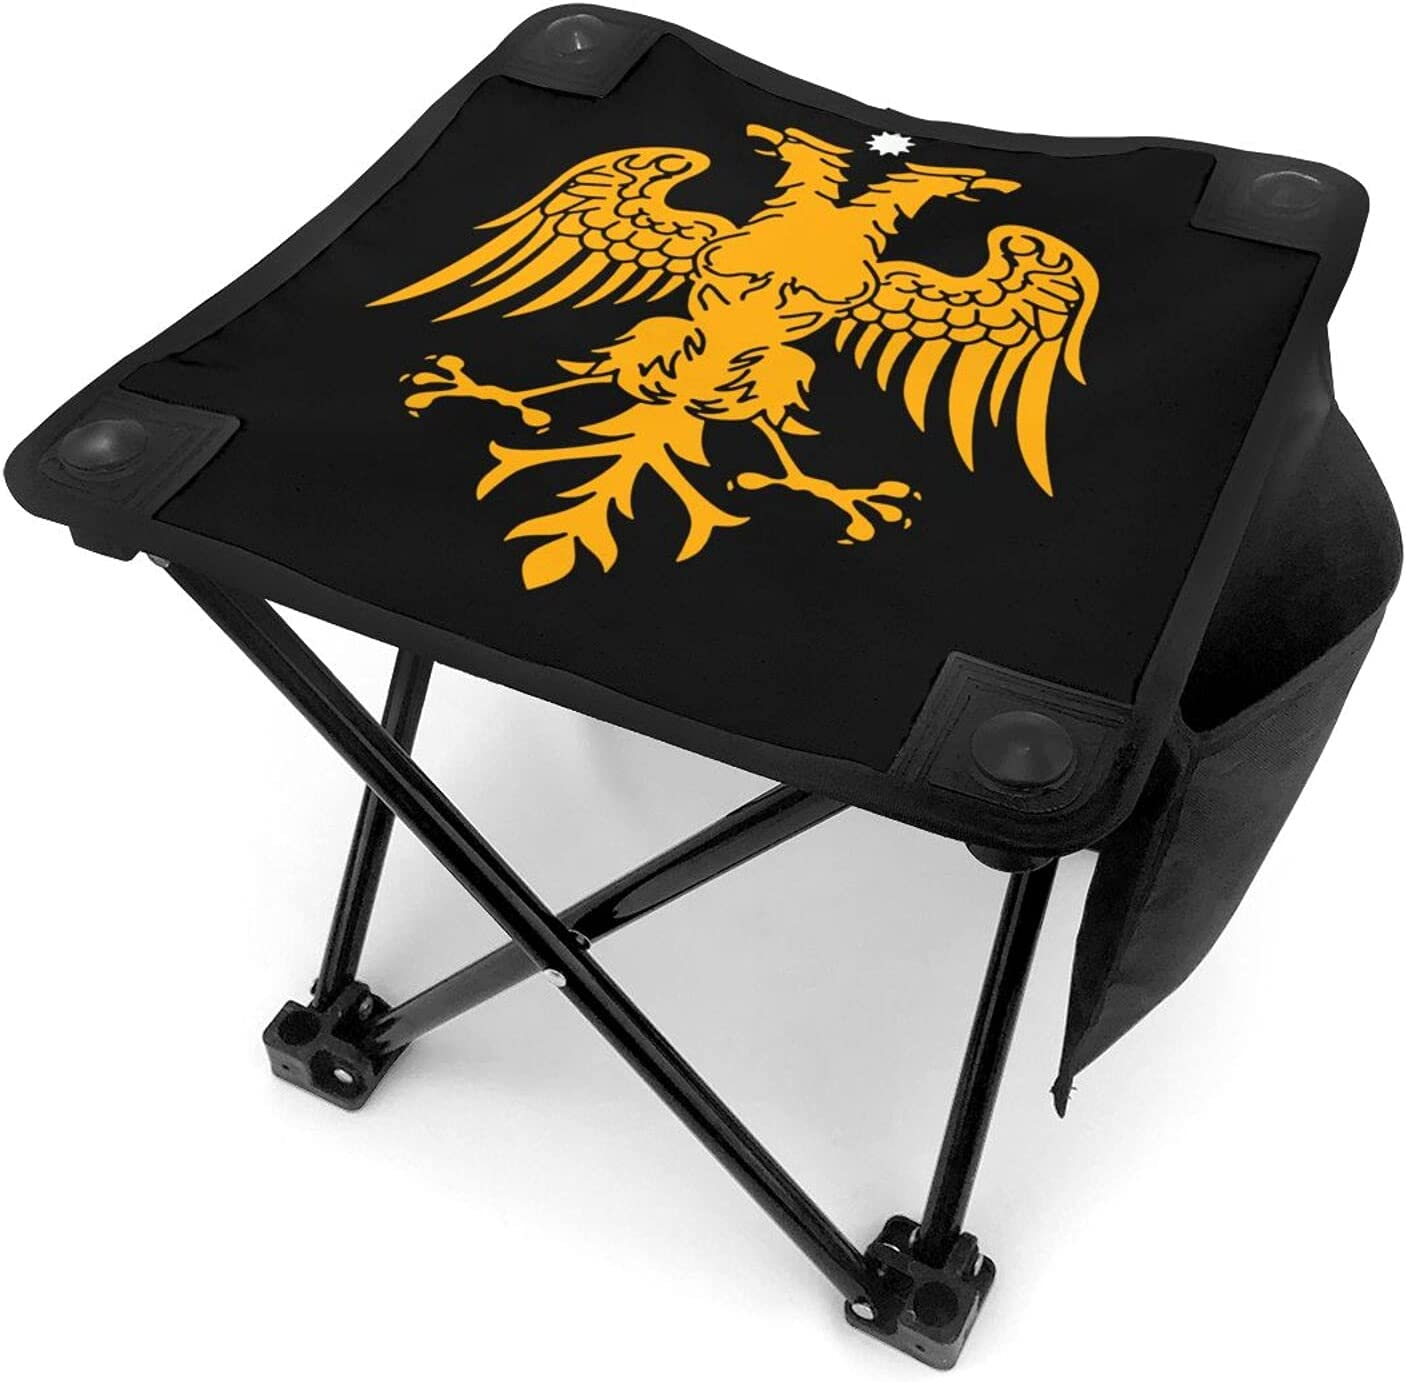 Albanian Luxury goods Eagle Slacker Chair Camping for Folding Max 72% OFF Stool